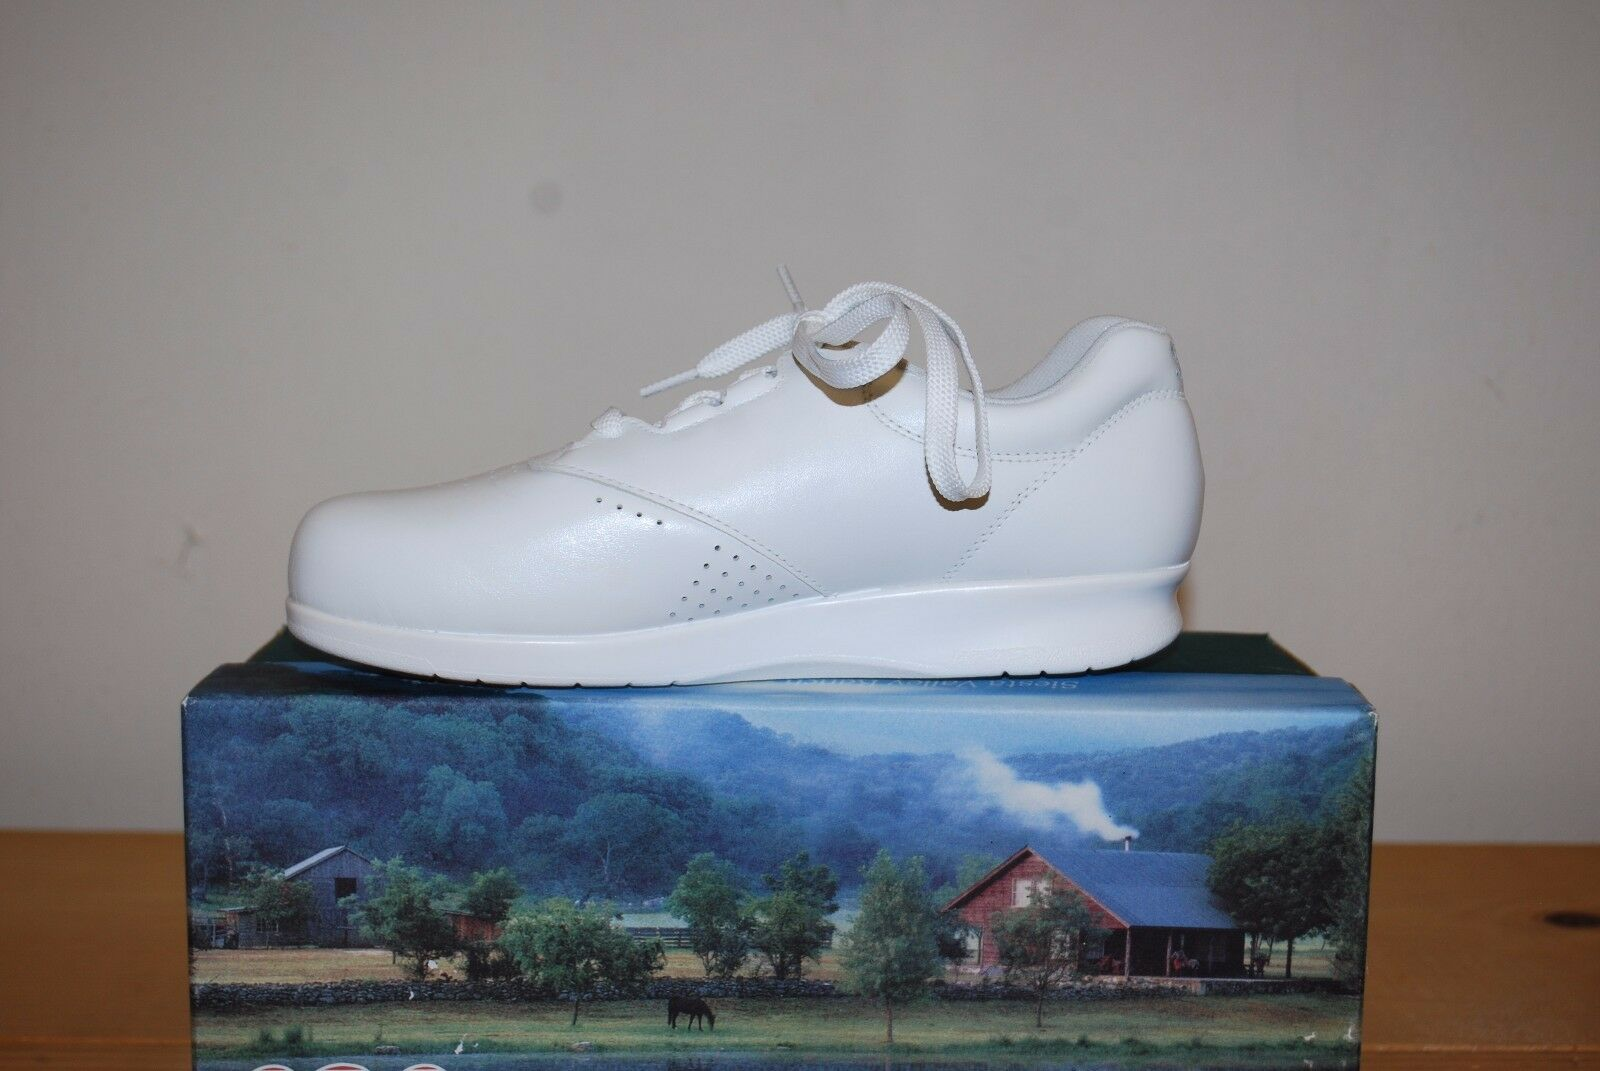 SAS Freetime Walking shoes shoes shoes in White - Made in the USA 158853